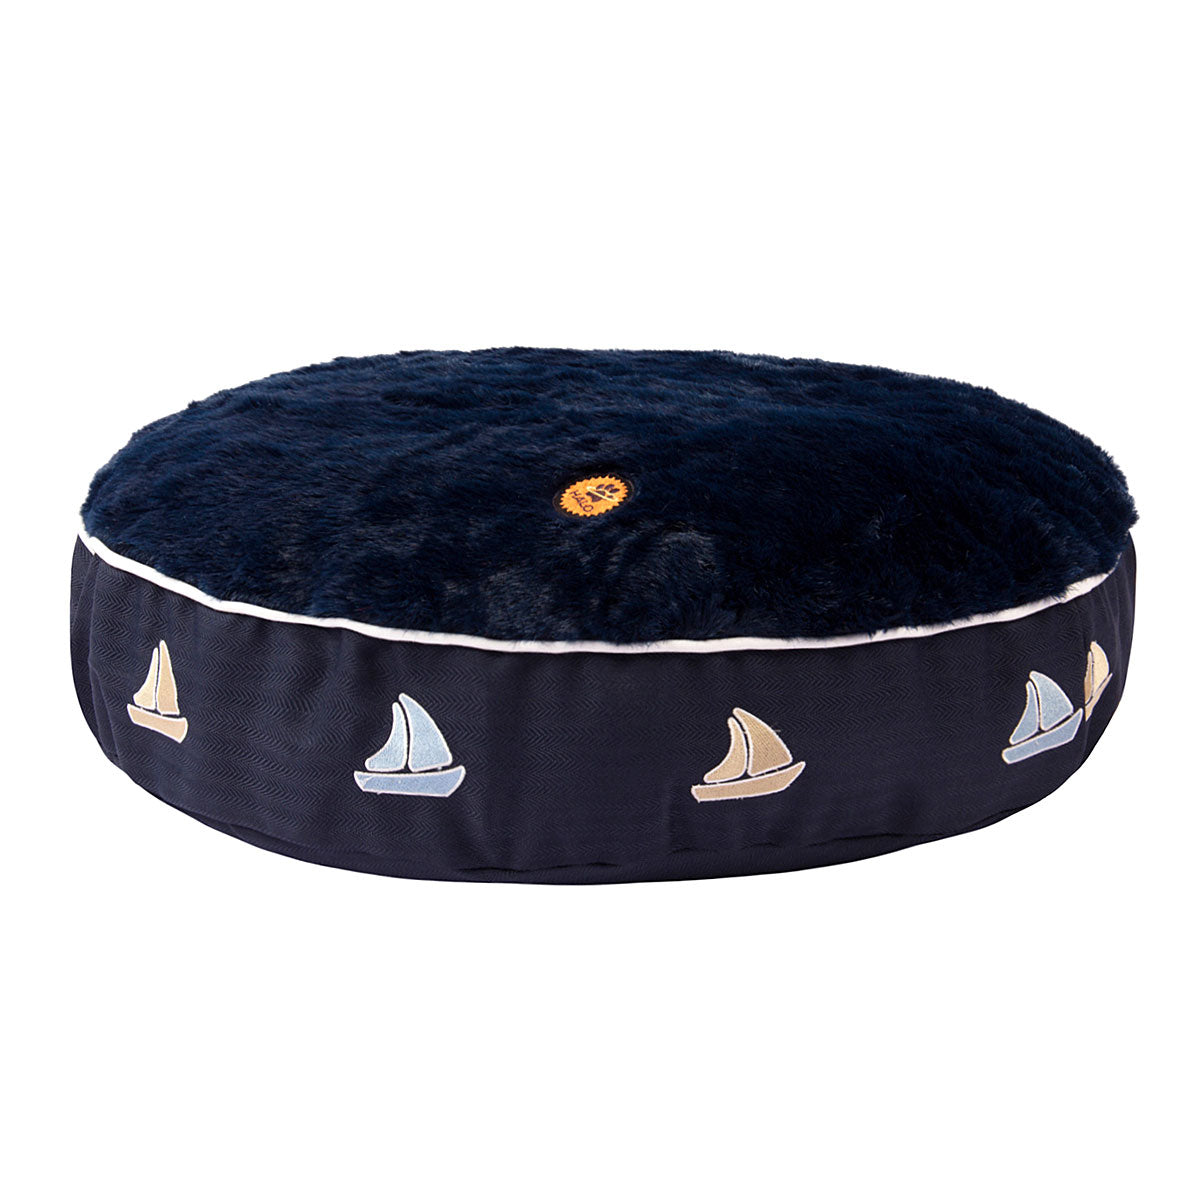 Halo Sailboat Round Dog Bed_2767